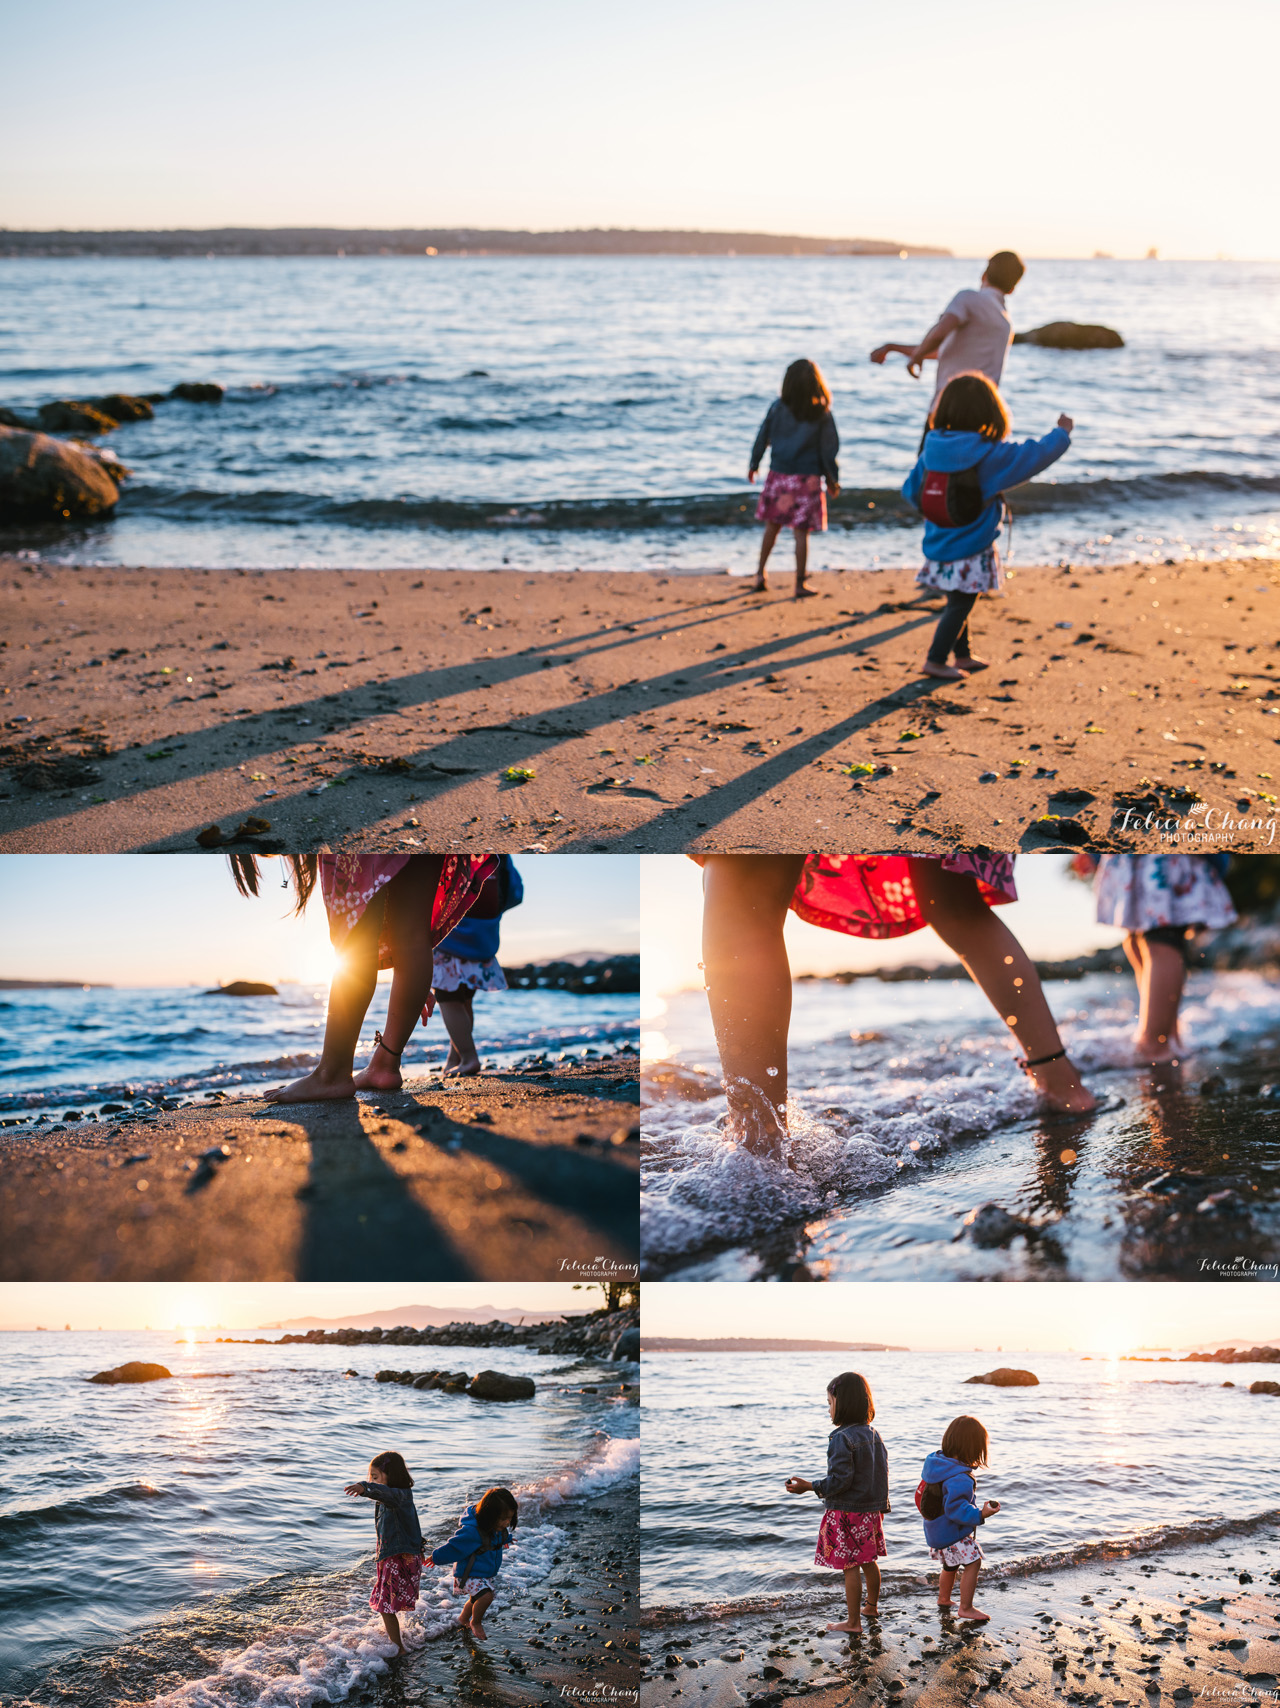 Evening at the beach | Felicia Chang Photography